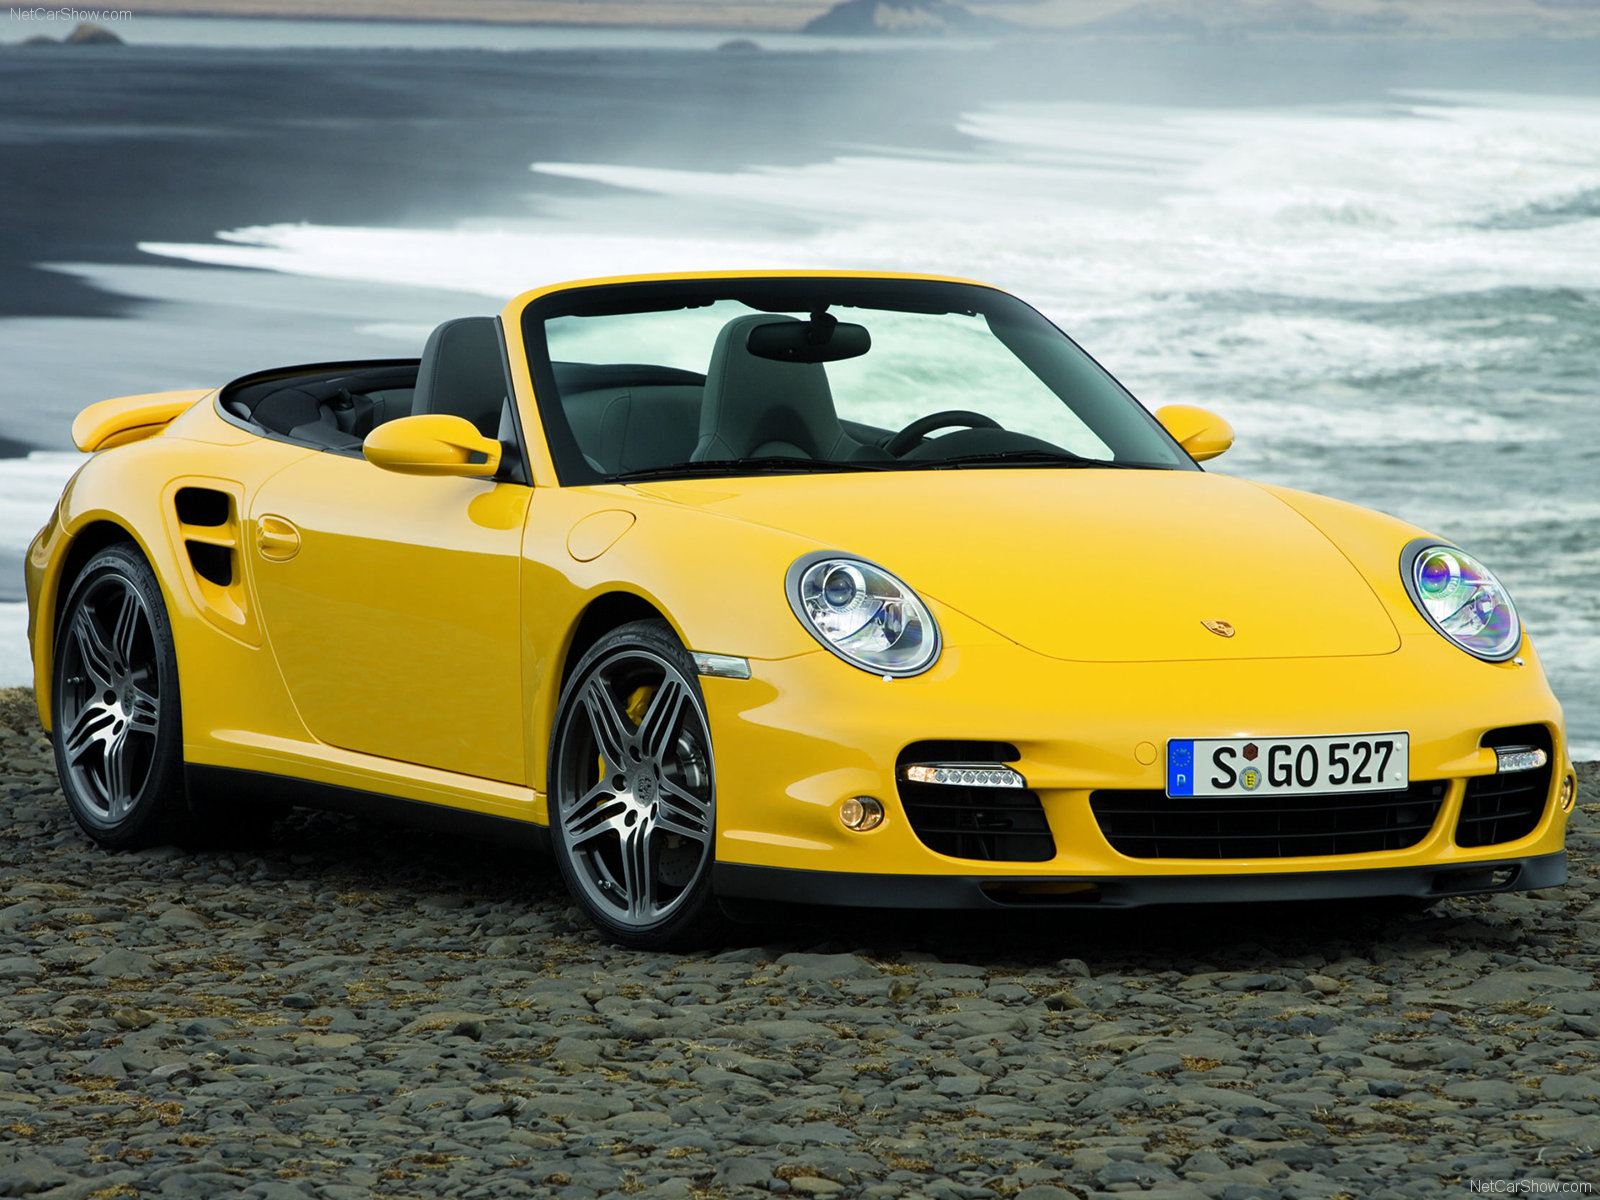 2008 Yellow Porsche 911 Turbo Cabriolet wallpapers